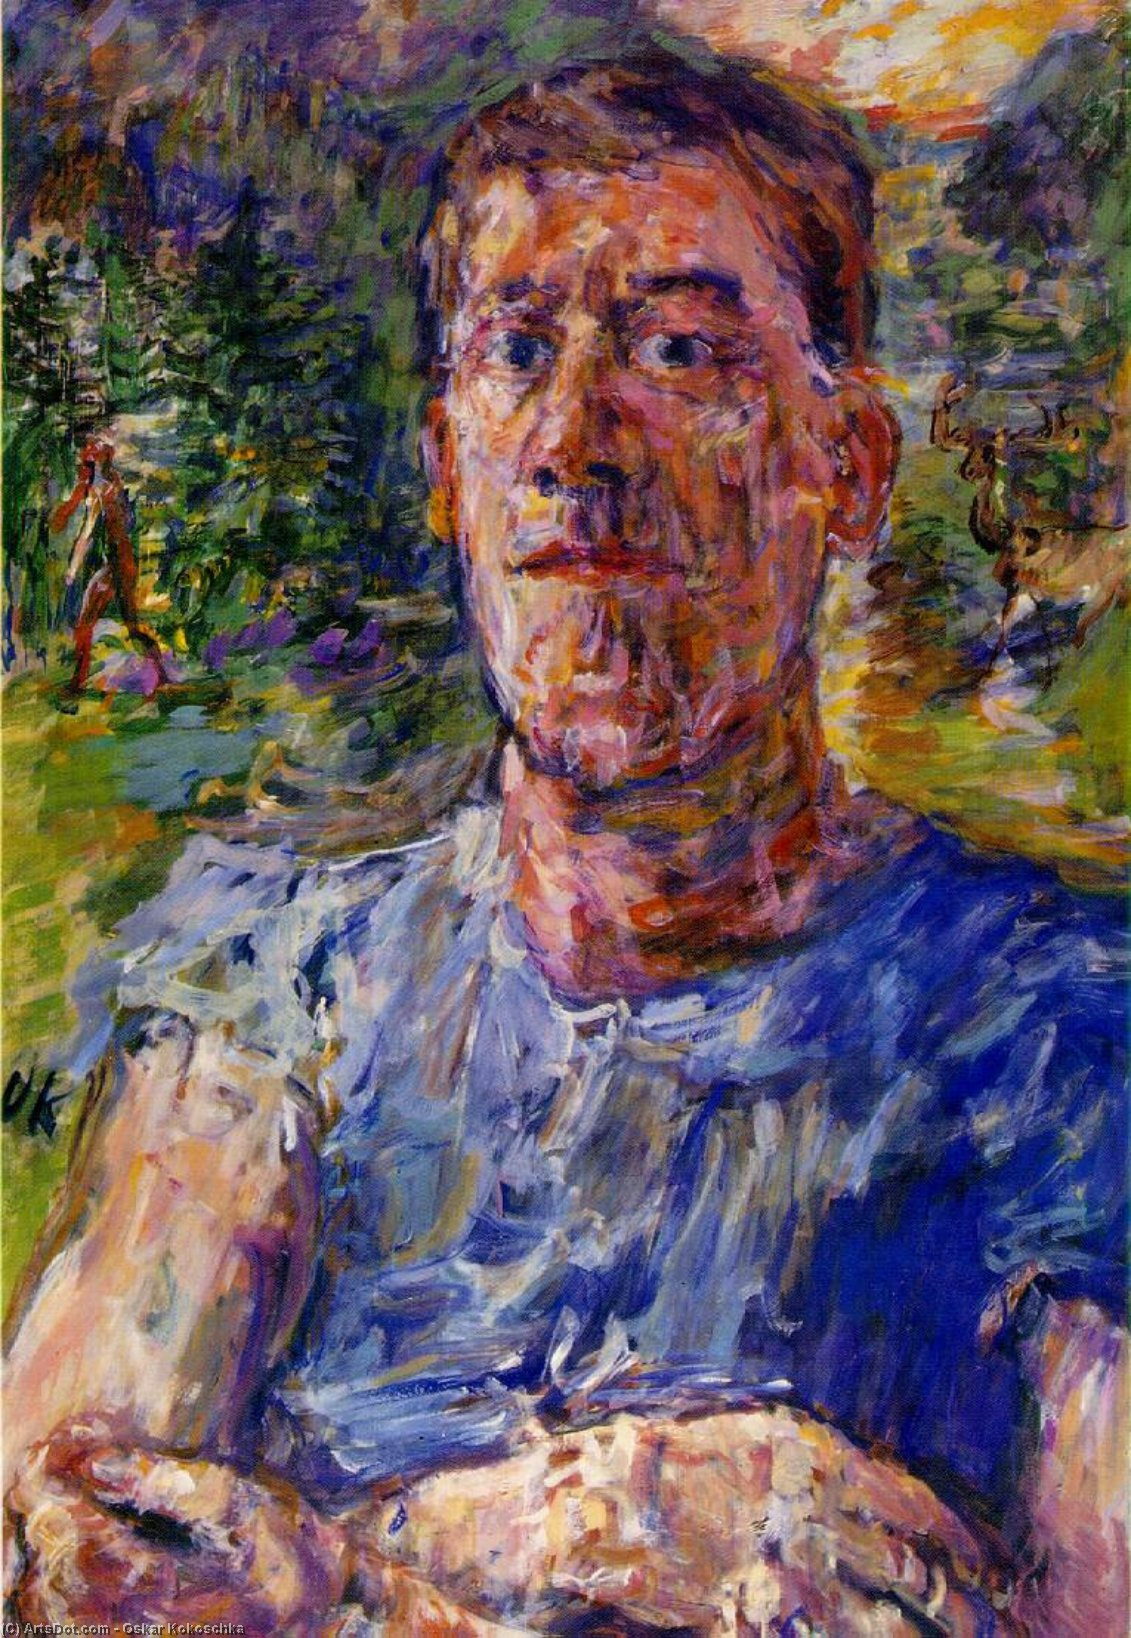 Self-portrait of a `Degenerate Artist`, 1937 by Oskar Kokoschka (1886-1980, Croatia) |  | ArtsDot.com